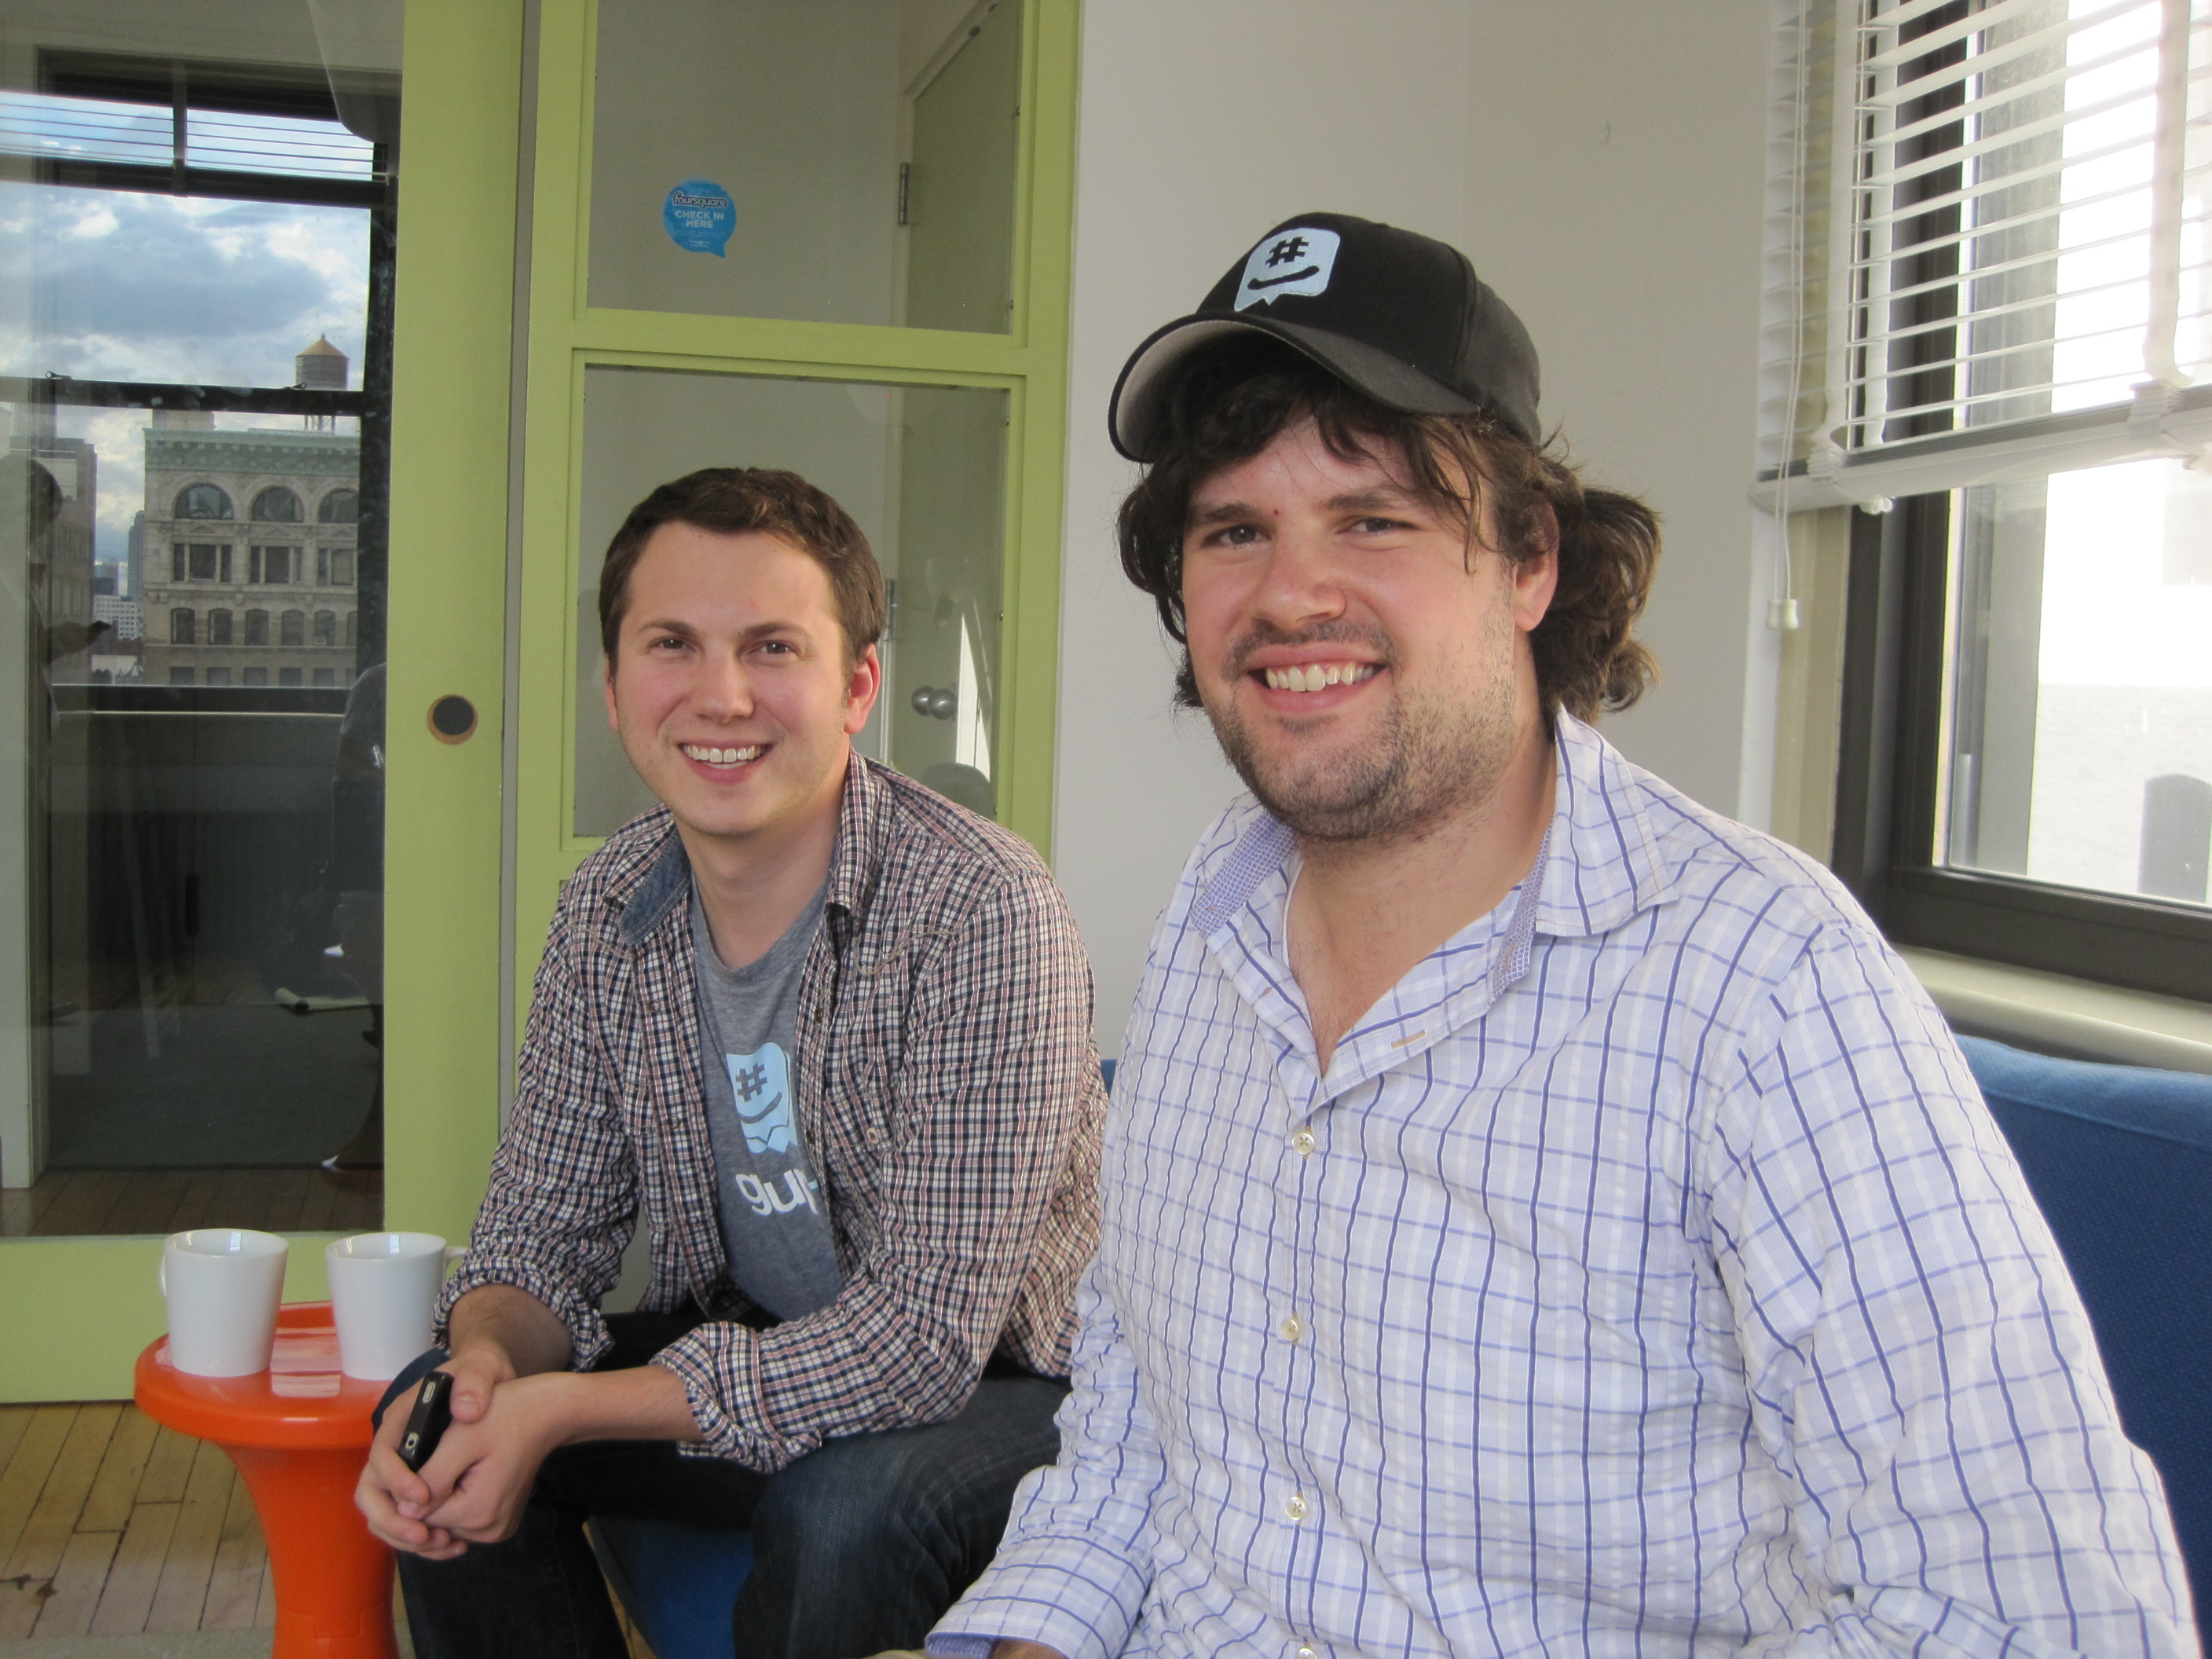 GroupMe founders Jared Hecht and Steve Martocci